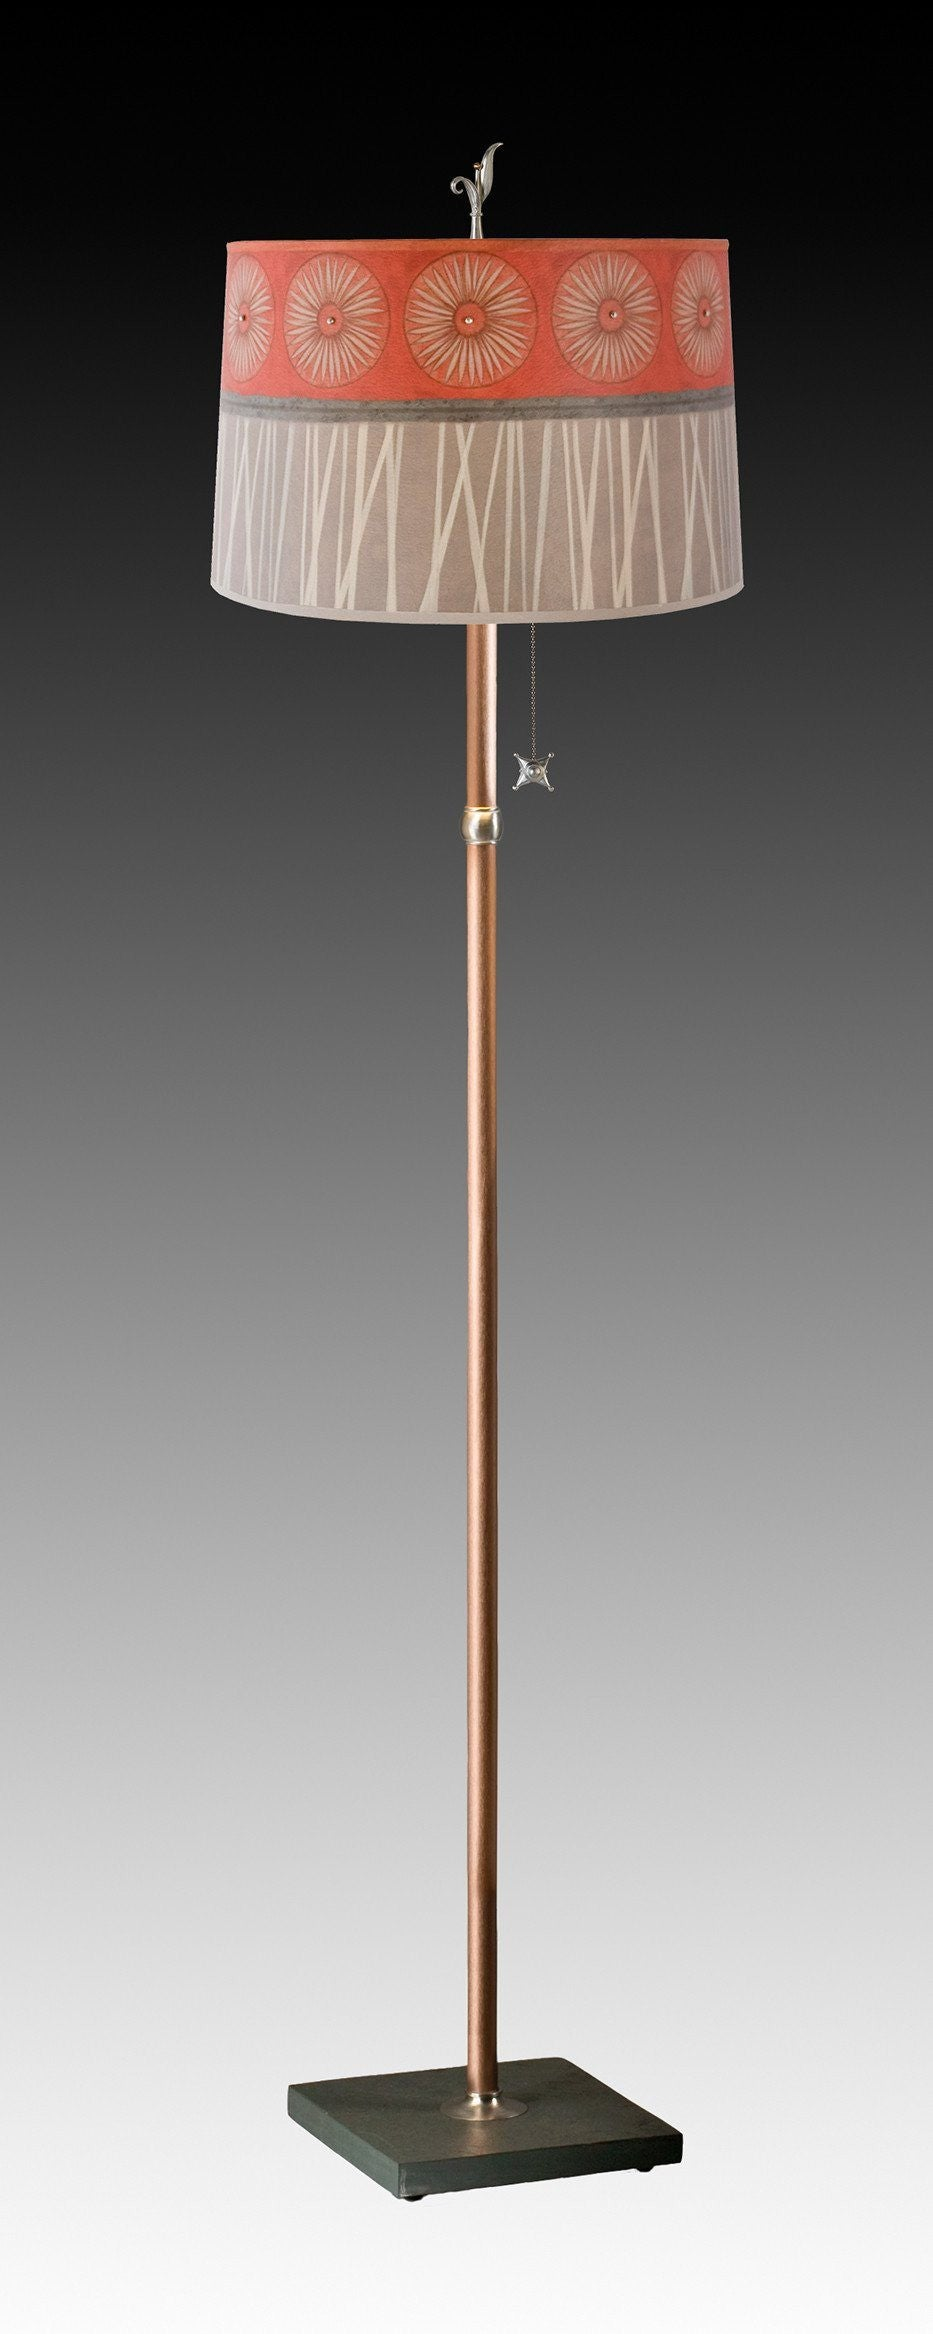 Copper Floor Lamp on Vermont Slate with Large Drum Shade in Tang